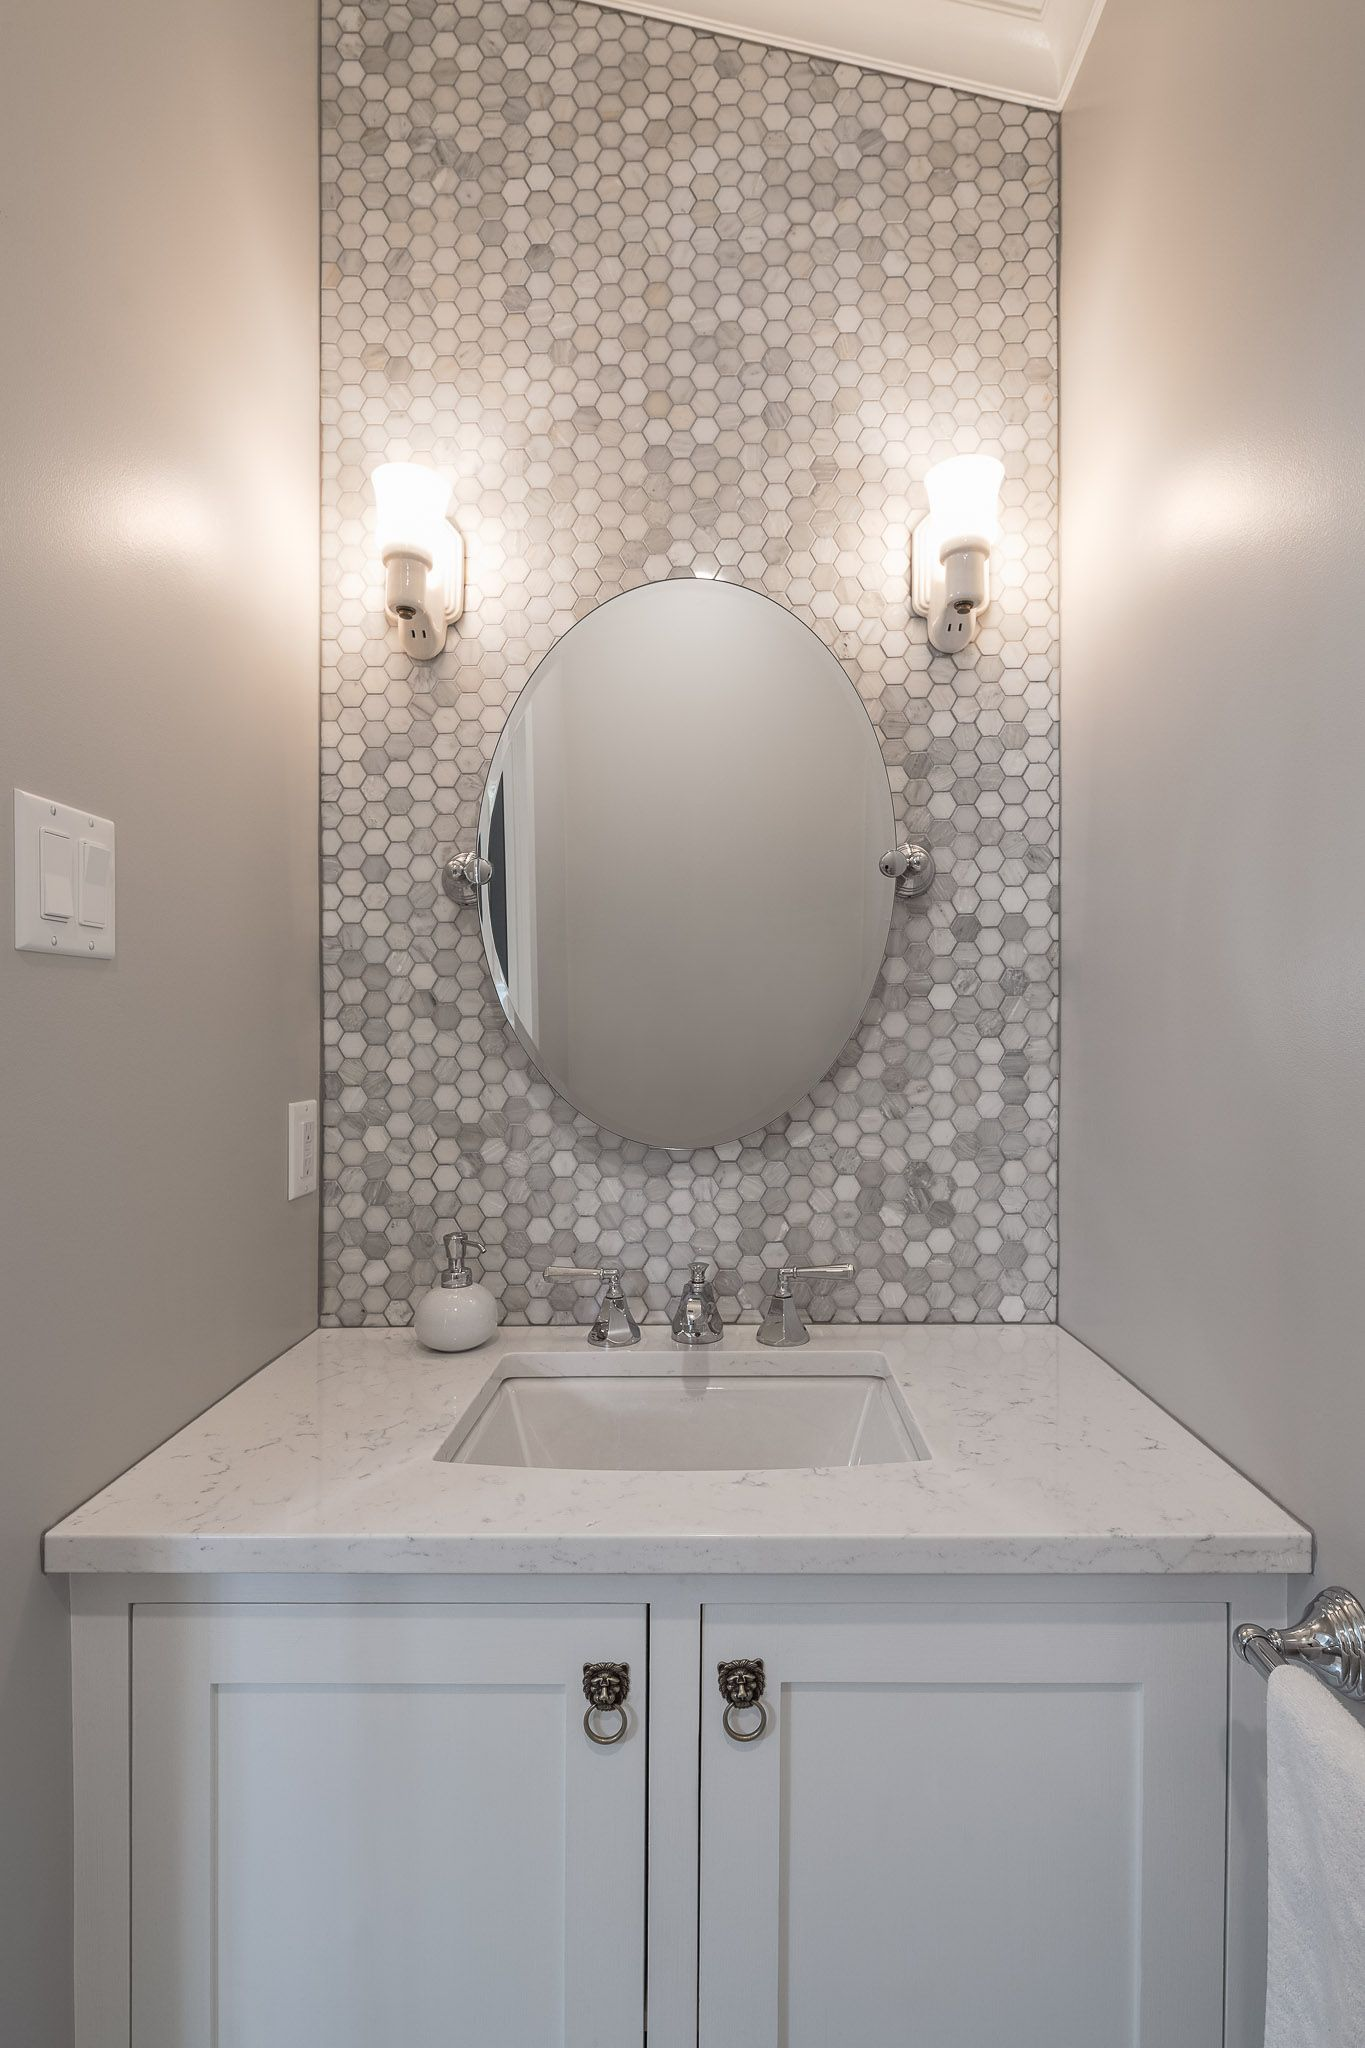 Design Details Renovation In Ottawa Ontario Marble Hexagonal Tile